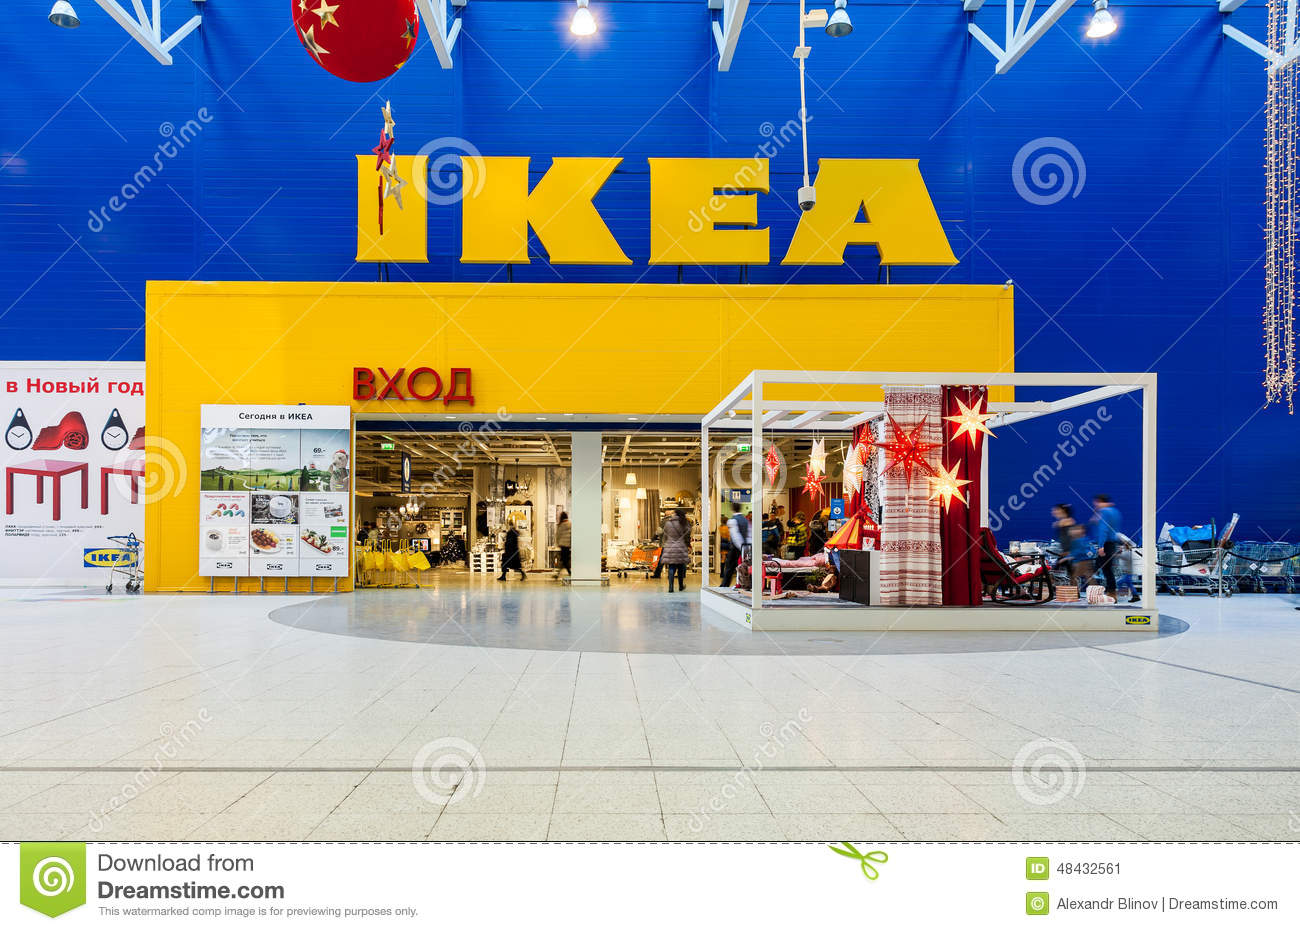 ikea was founded by ingvar kamprad marketing essay Ingvar kamprad's role in ikea's development: as the founder of ikea, ingvar plays a very important role in ikea's development in the early days, as a founder, he plays the role of decision-maker.